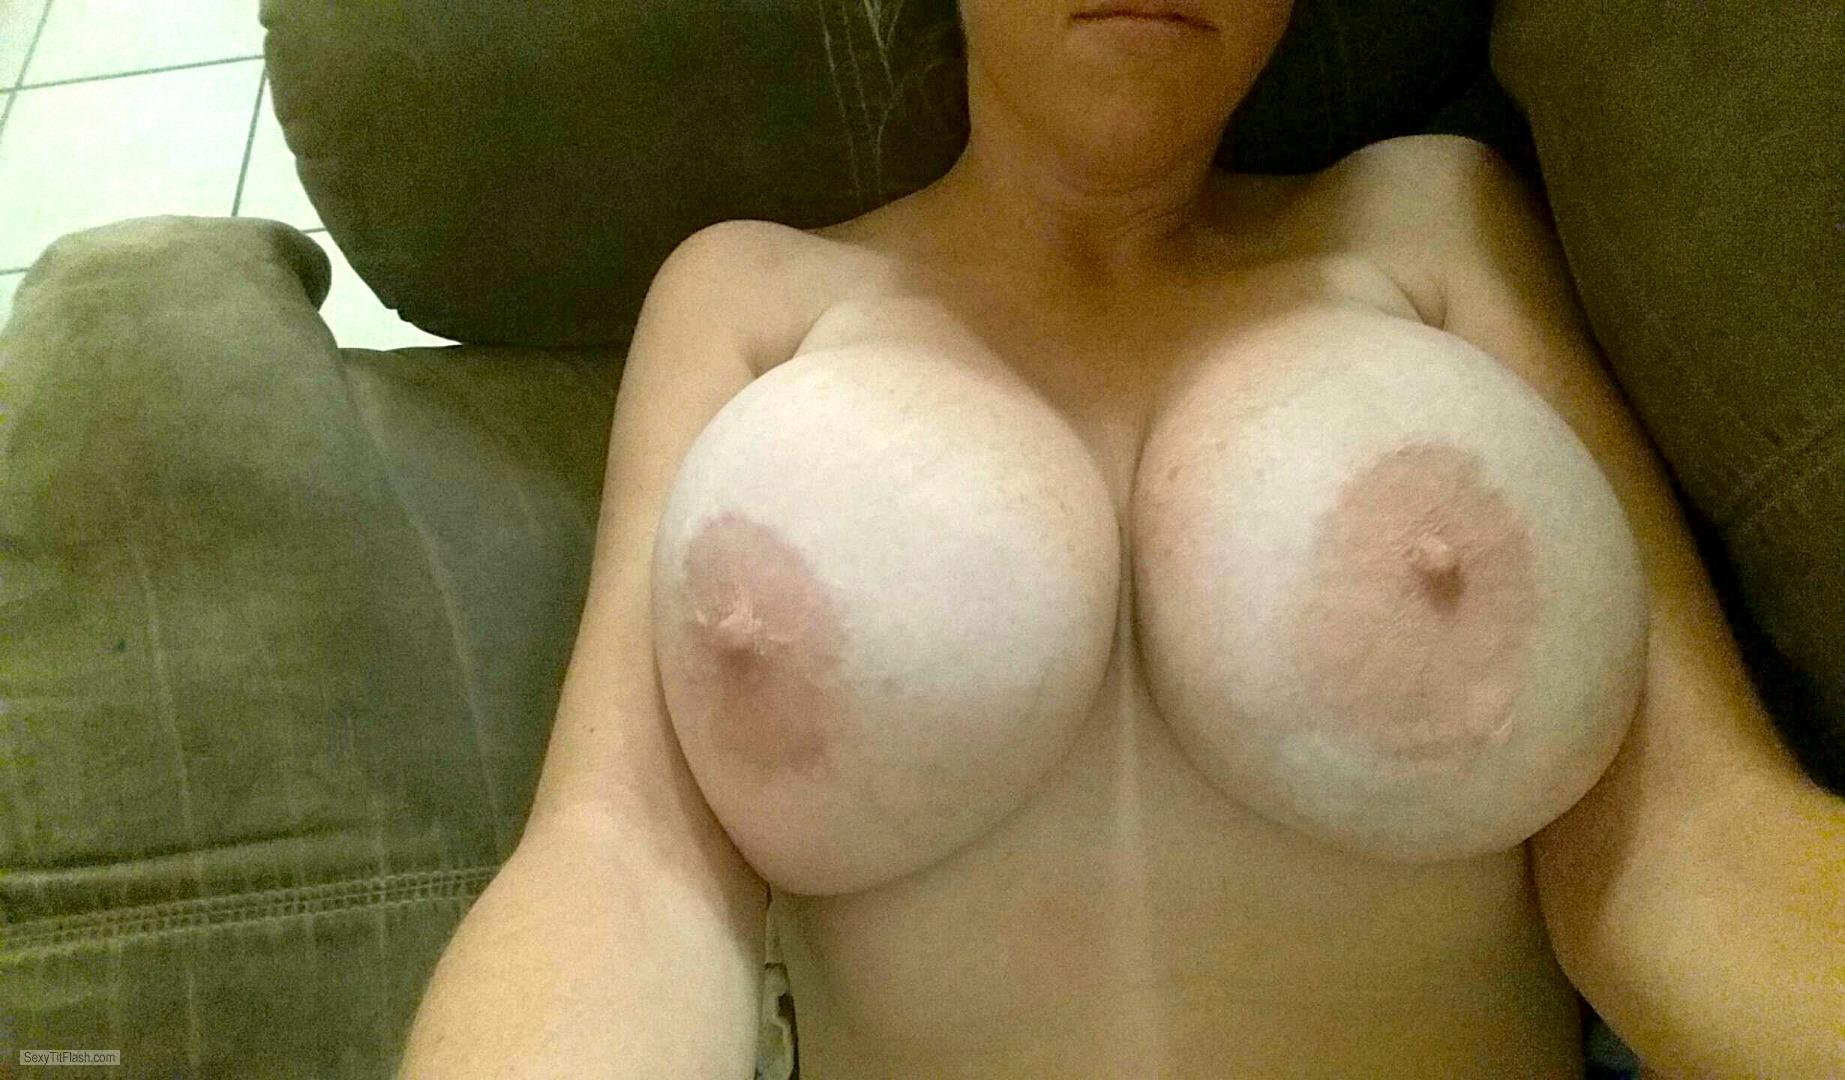 Very big Tits Of A Friend Big Funbags